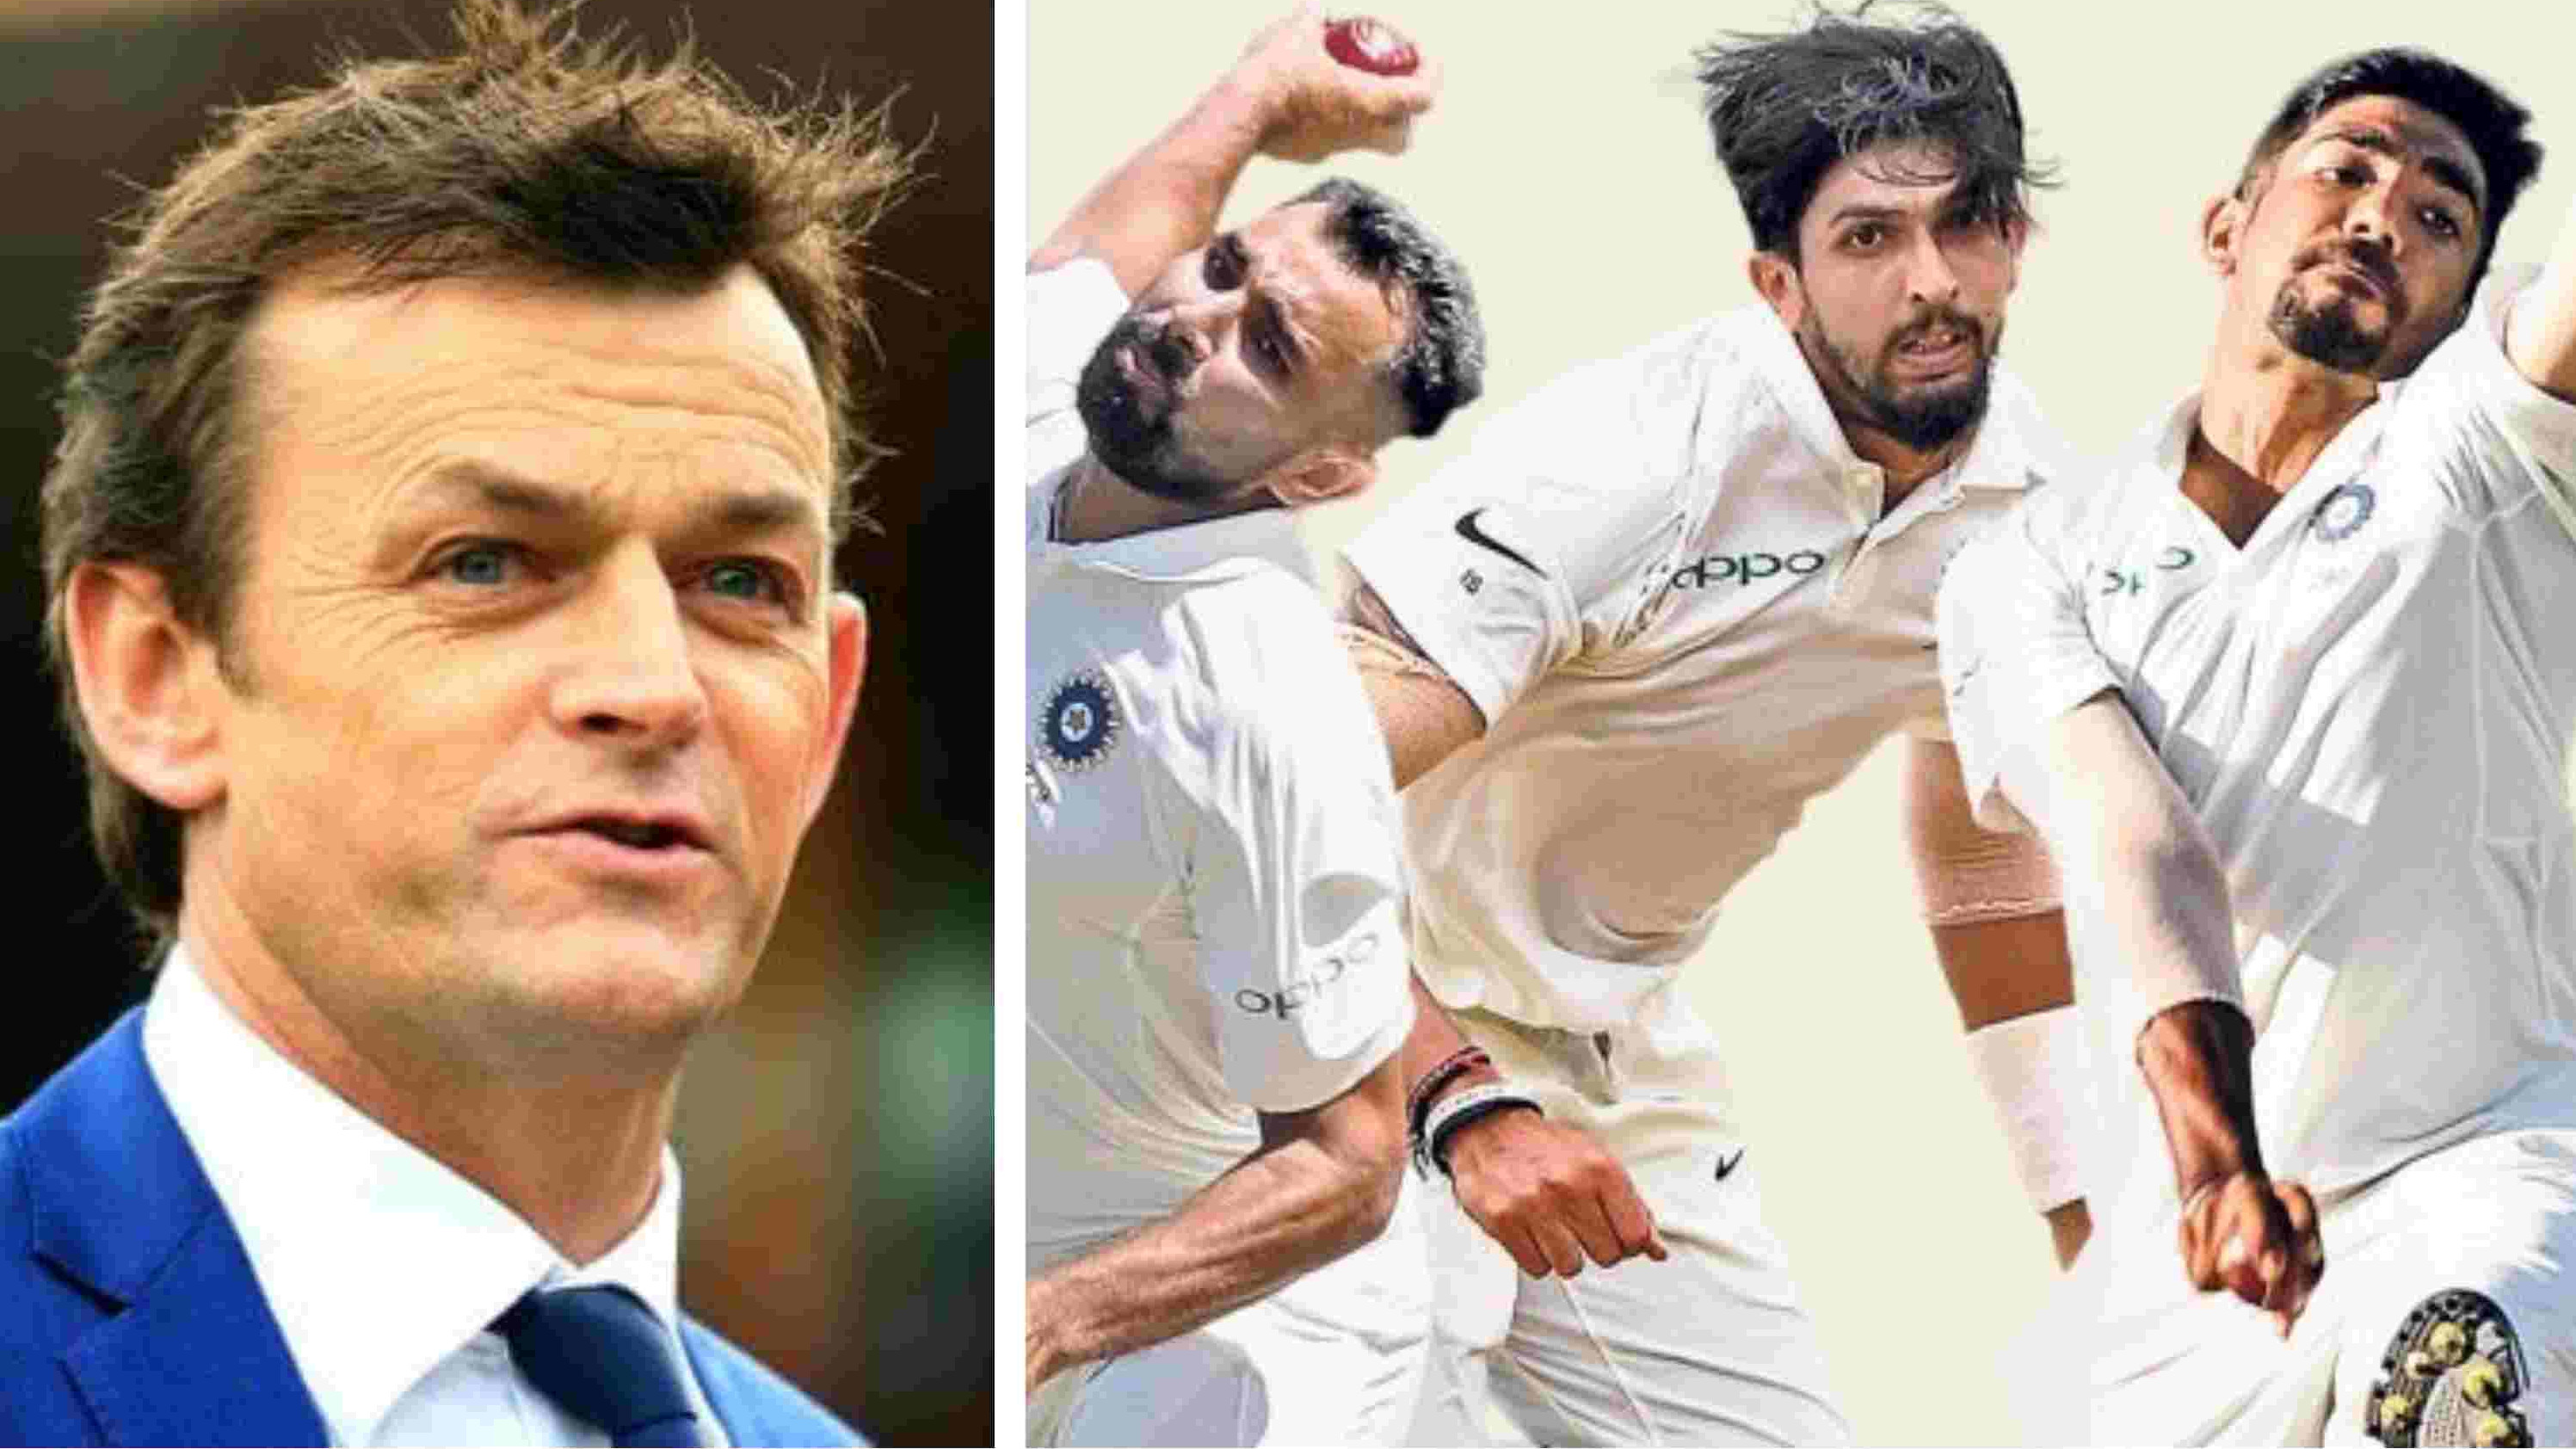 AUS v IND 2018-19: Adam Gilchrist unsure about Indian fast bowlers' success in Australia